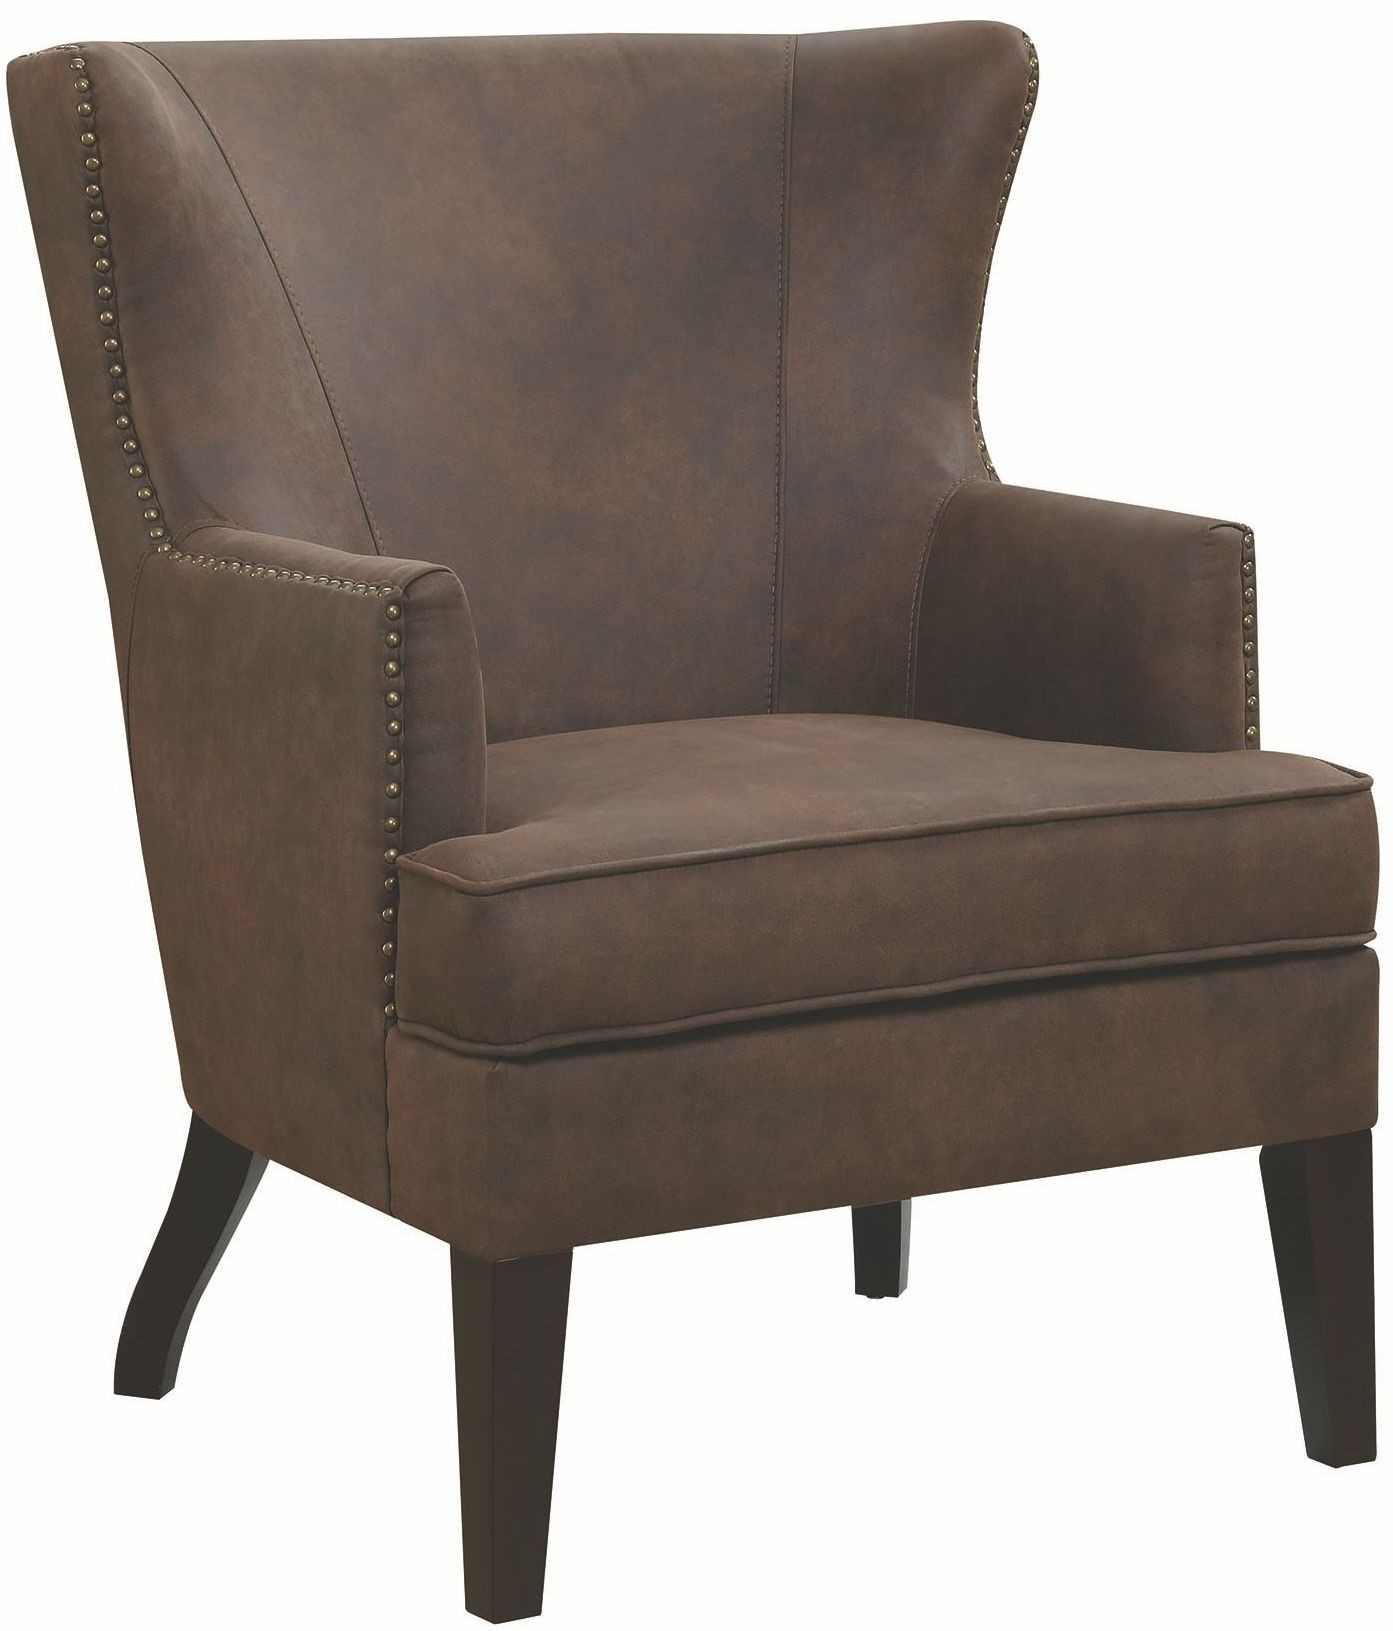 Brown Accent Chair: Brown Accent Chair, 903817, Coaster Furniture